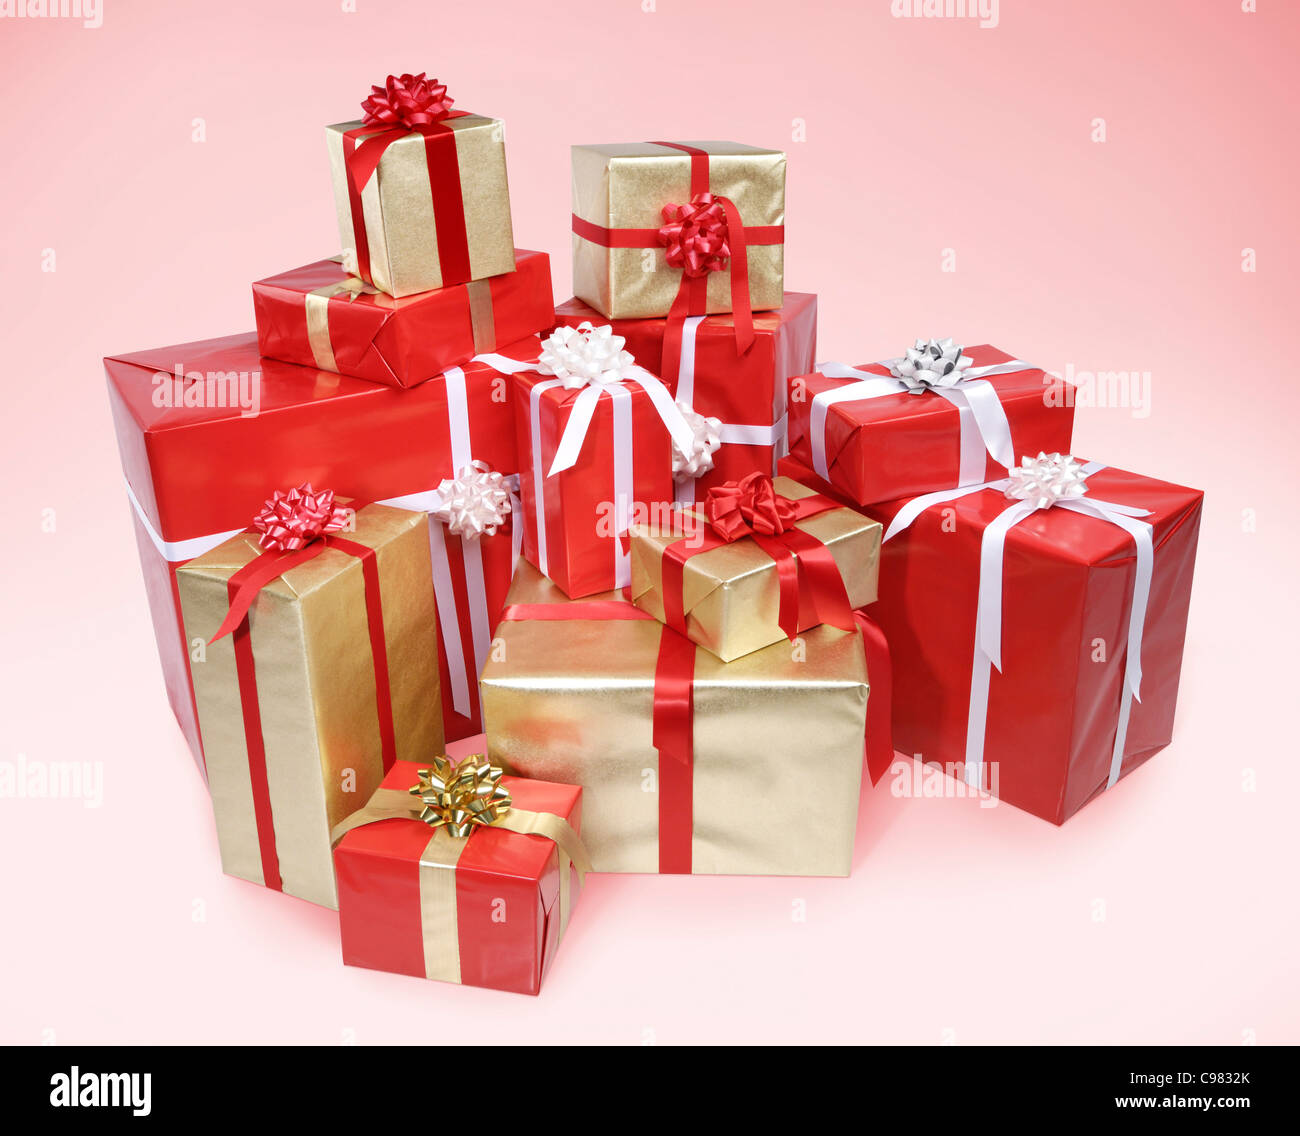 Pile of Christmas gift boxes isolated on pink background with clipping path Stock Photo